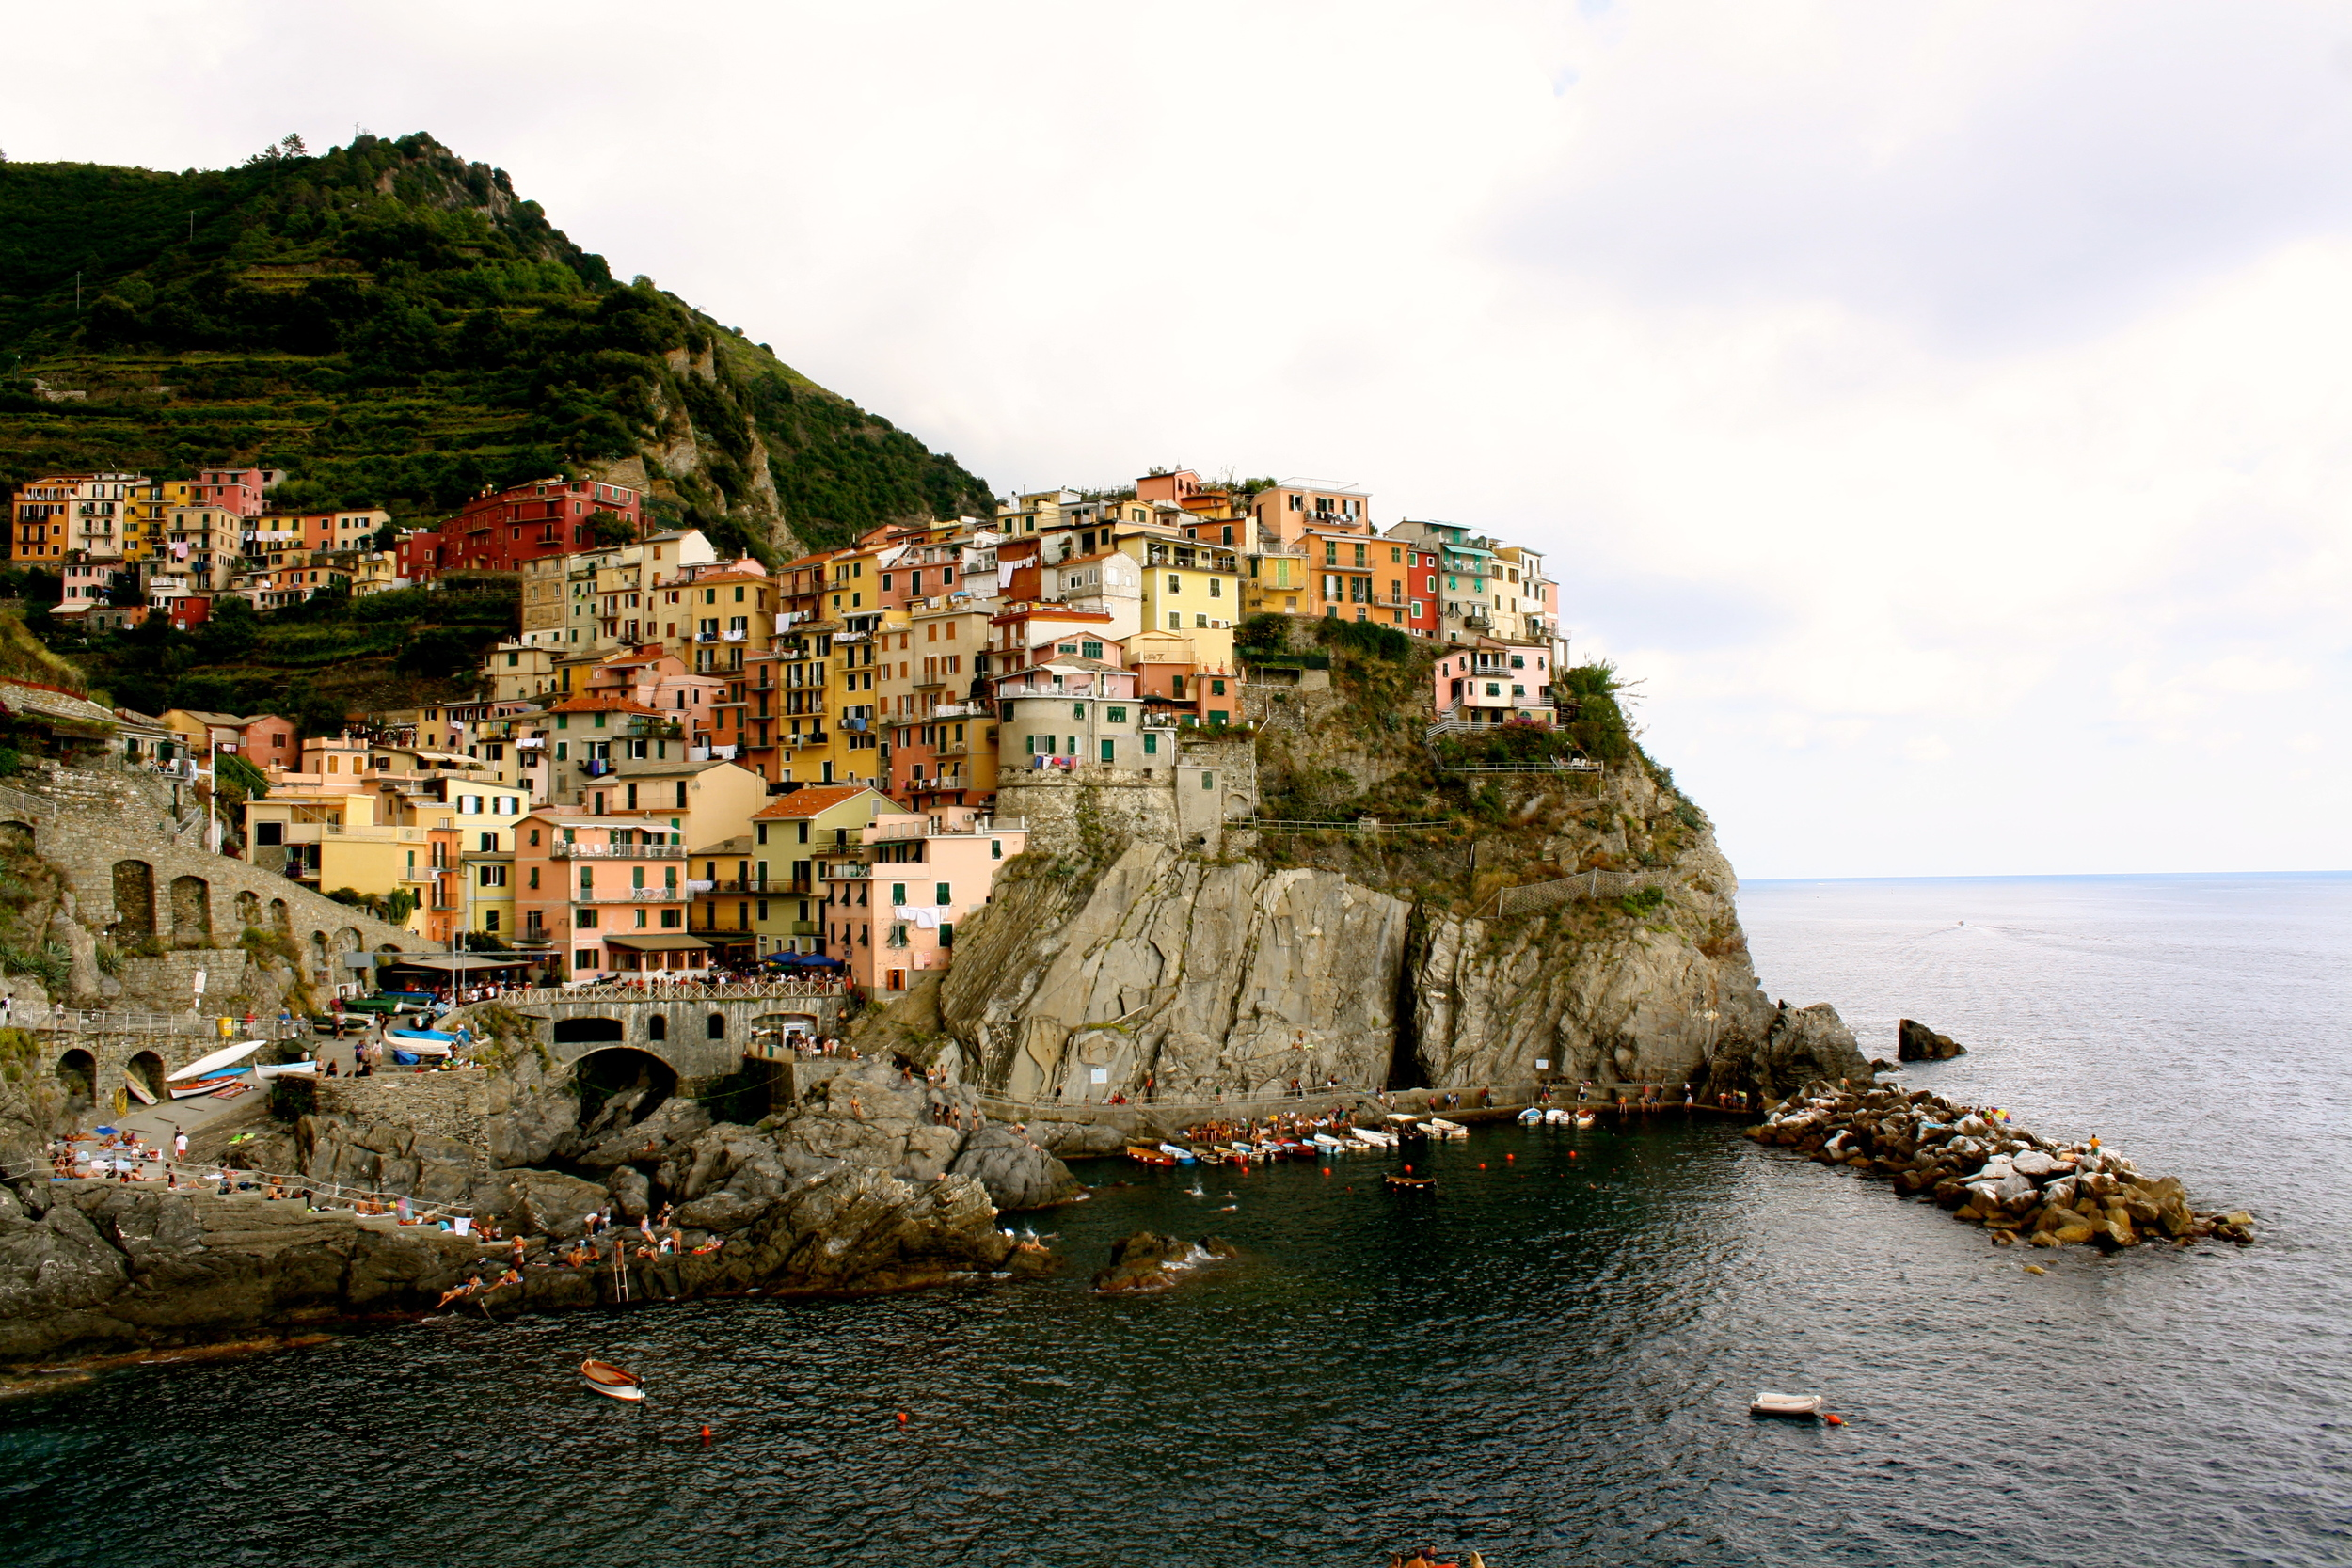 Manarola was my favorite of the Cinque Terres, it's kind of incredibly gorgeous.